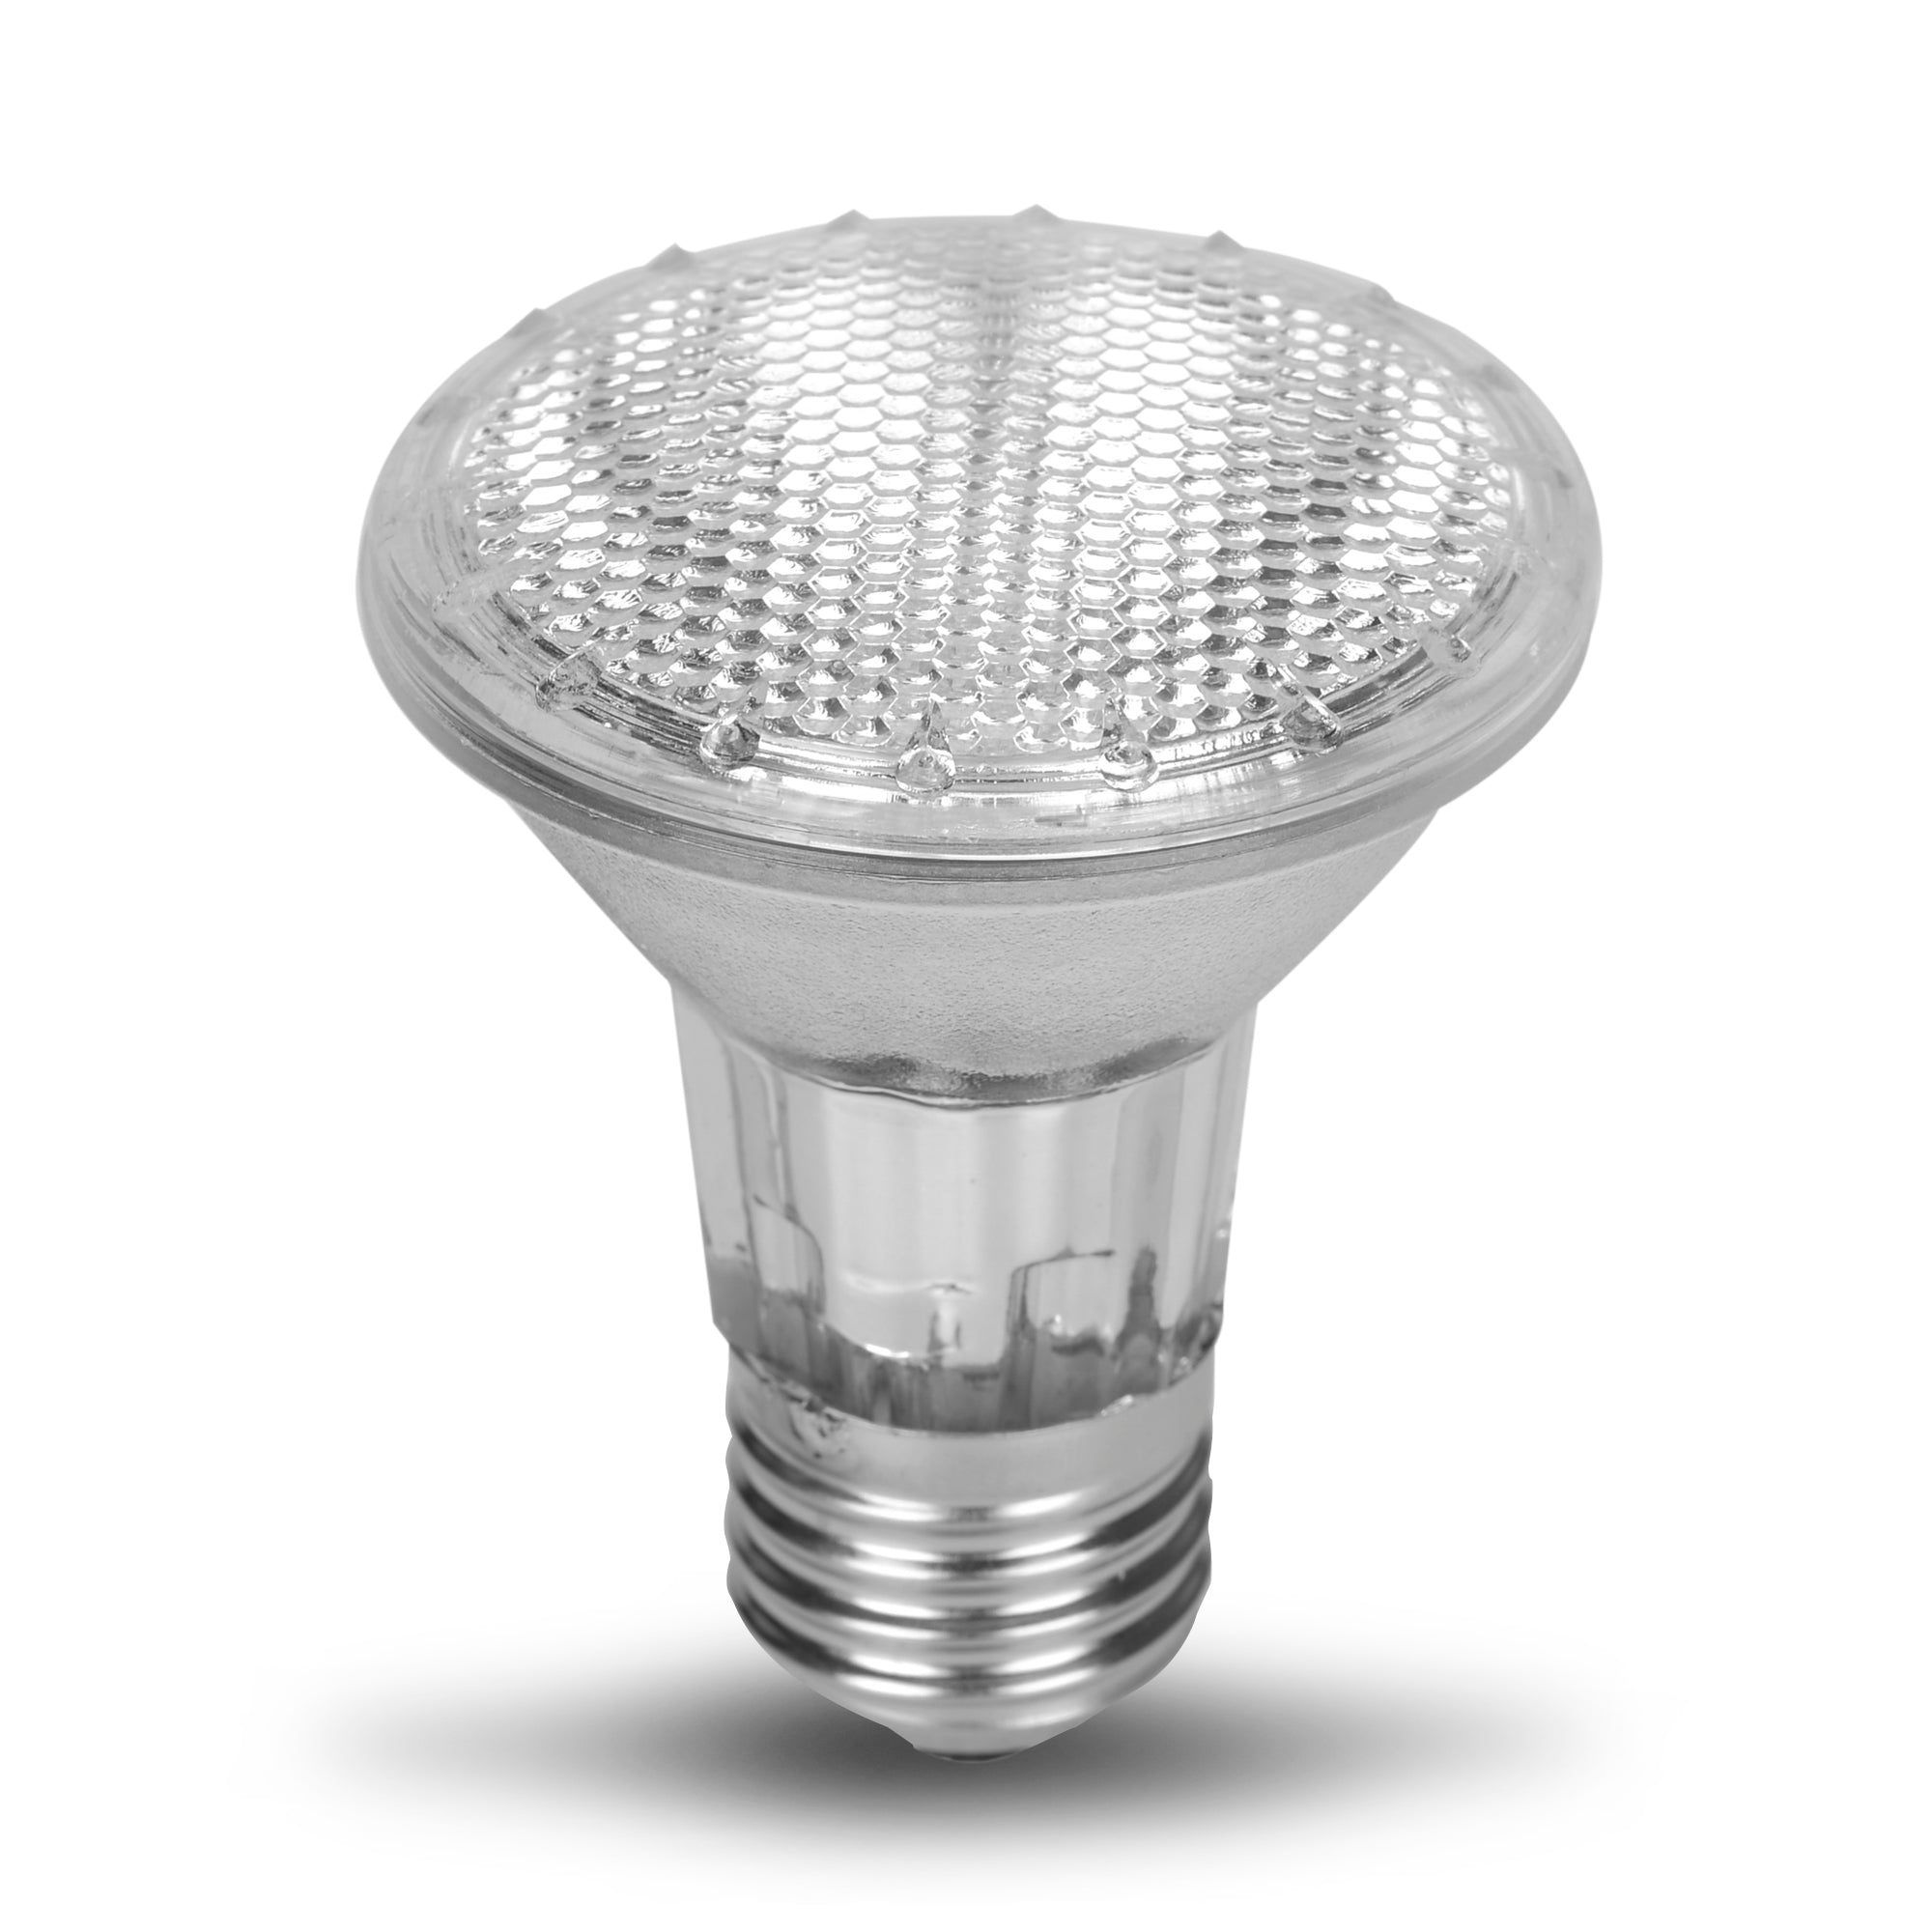 Par20 Halogen Light Bulb Value 3 6 15 Pack 120v 35 Watt Flood Lamp 12vmonster Lighting And More